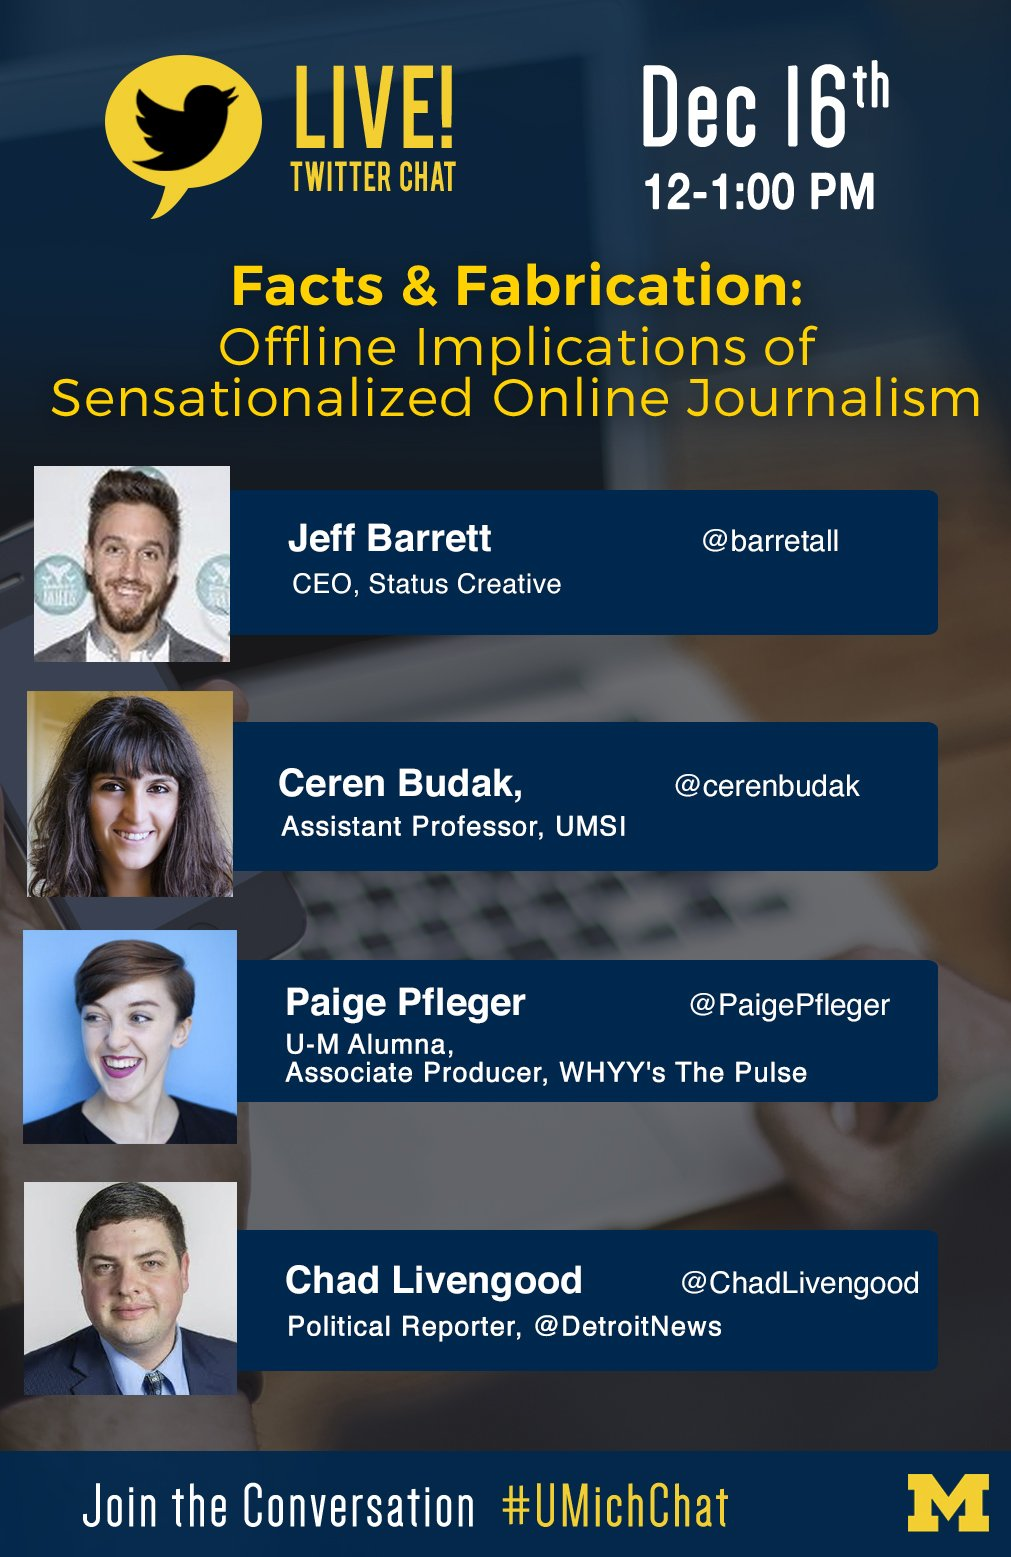 Are we consumers of fact or fiction? Join us today at noon to discuss the real world consequences of fake news. #UMichChat https://t.co/yICEV5DMmr